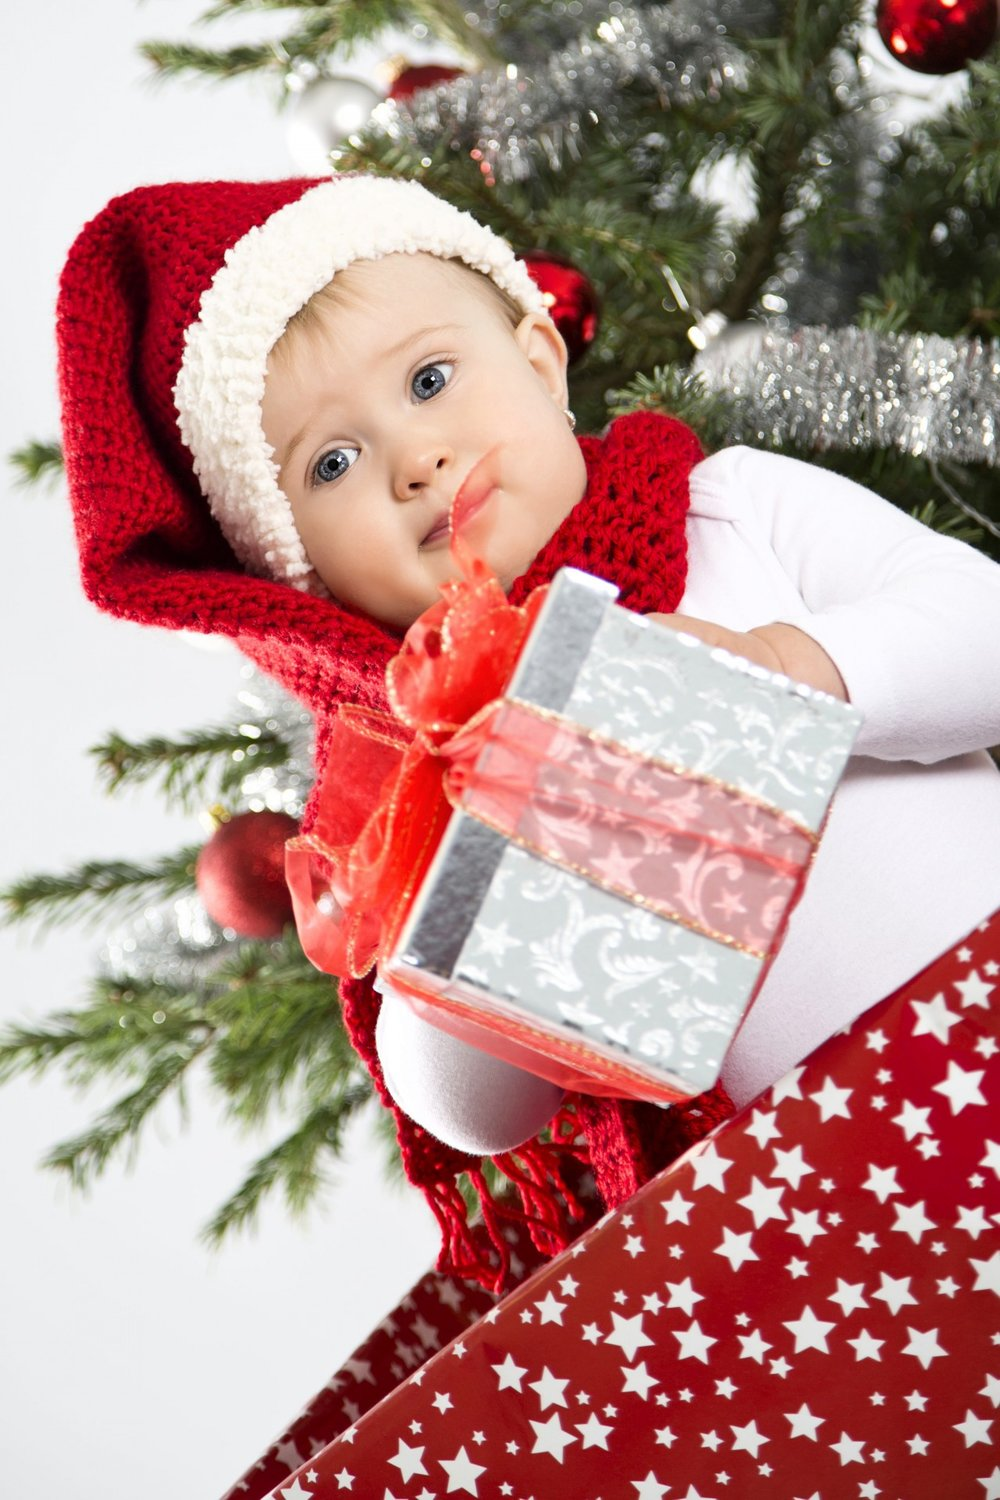 Baby with a Christmas present